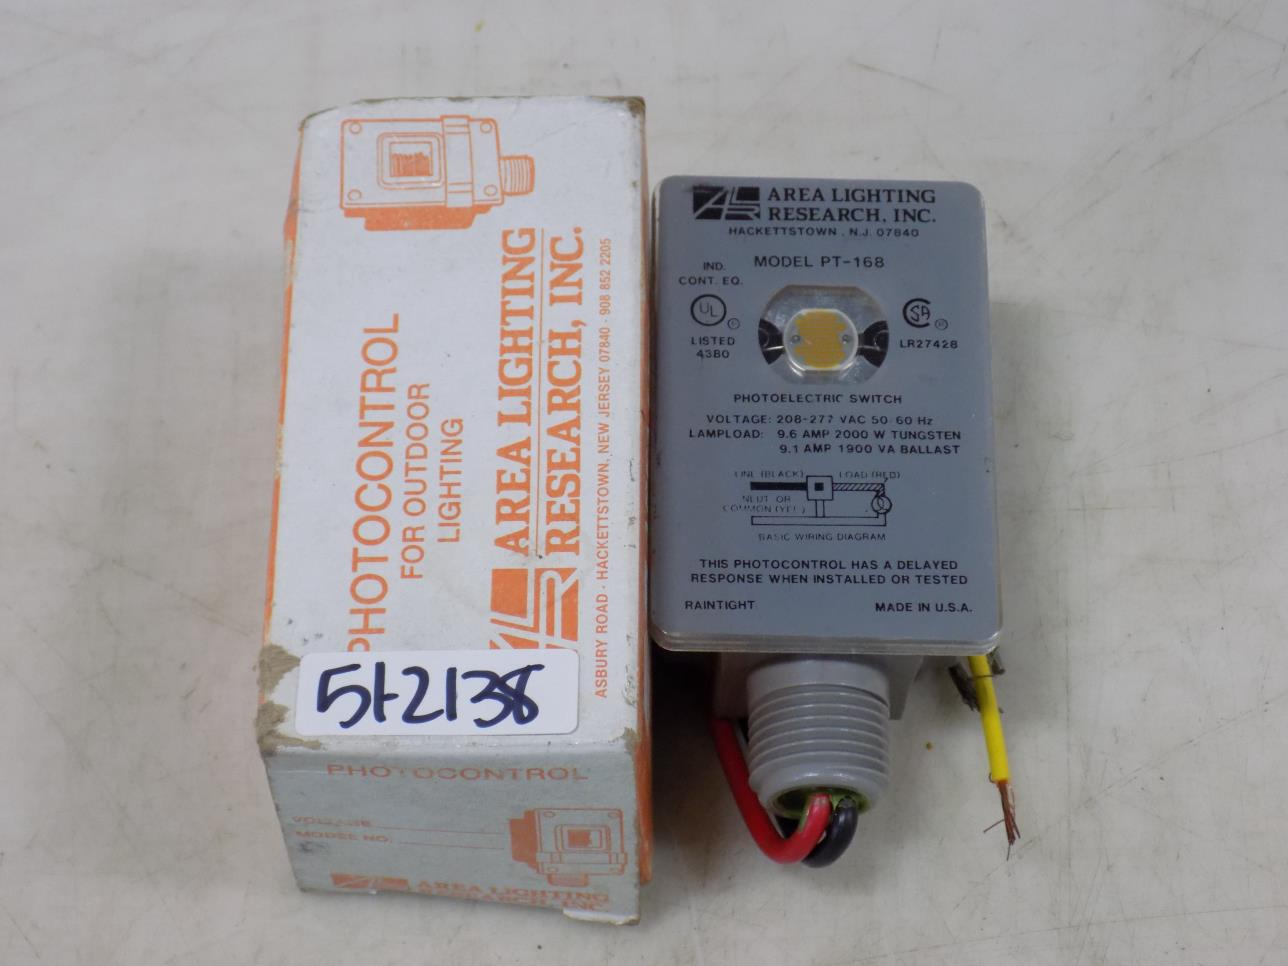 hight resolution of area lighting research inc photoelectric switch pt 168 nib